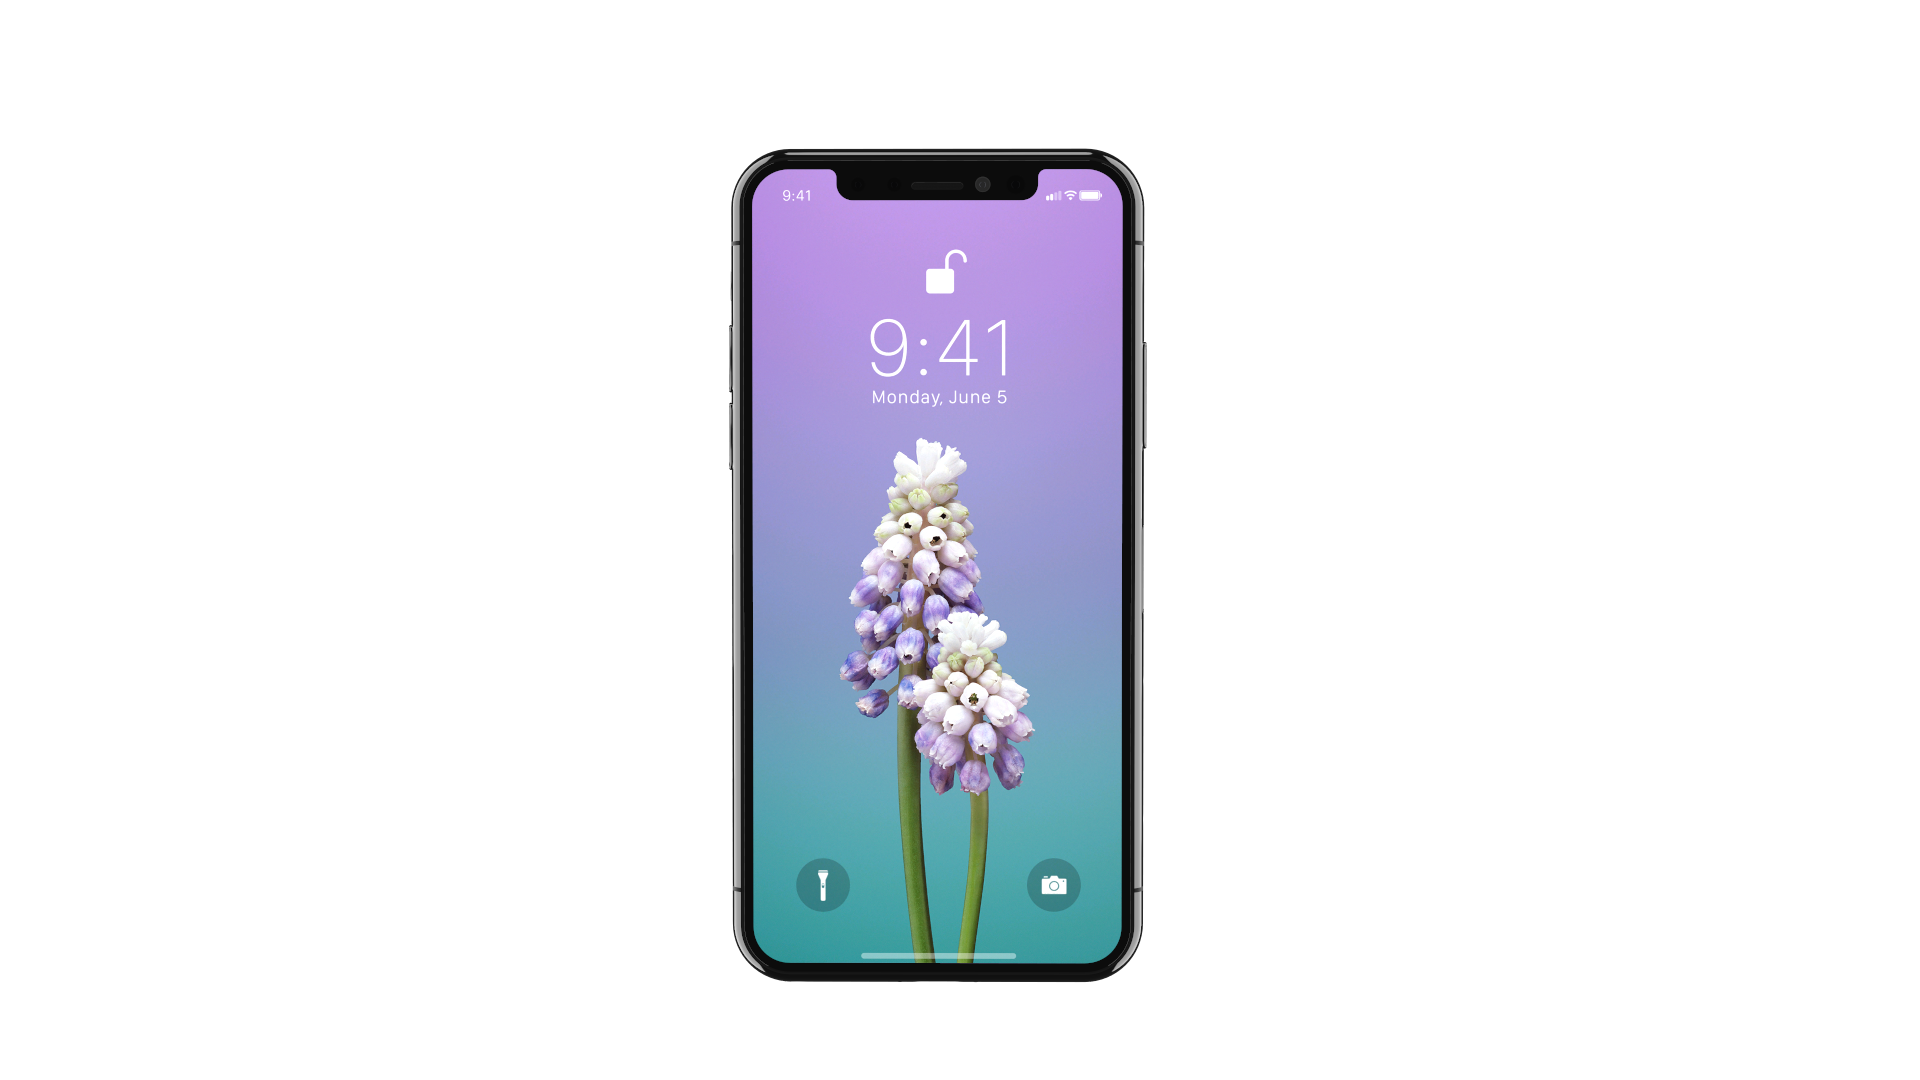 X Renders IPhone Lockscreen Flower Muscari